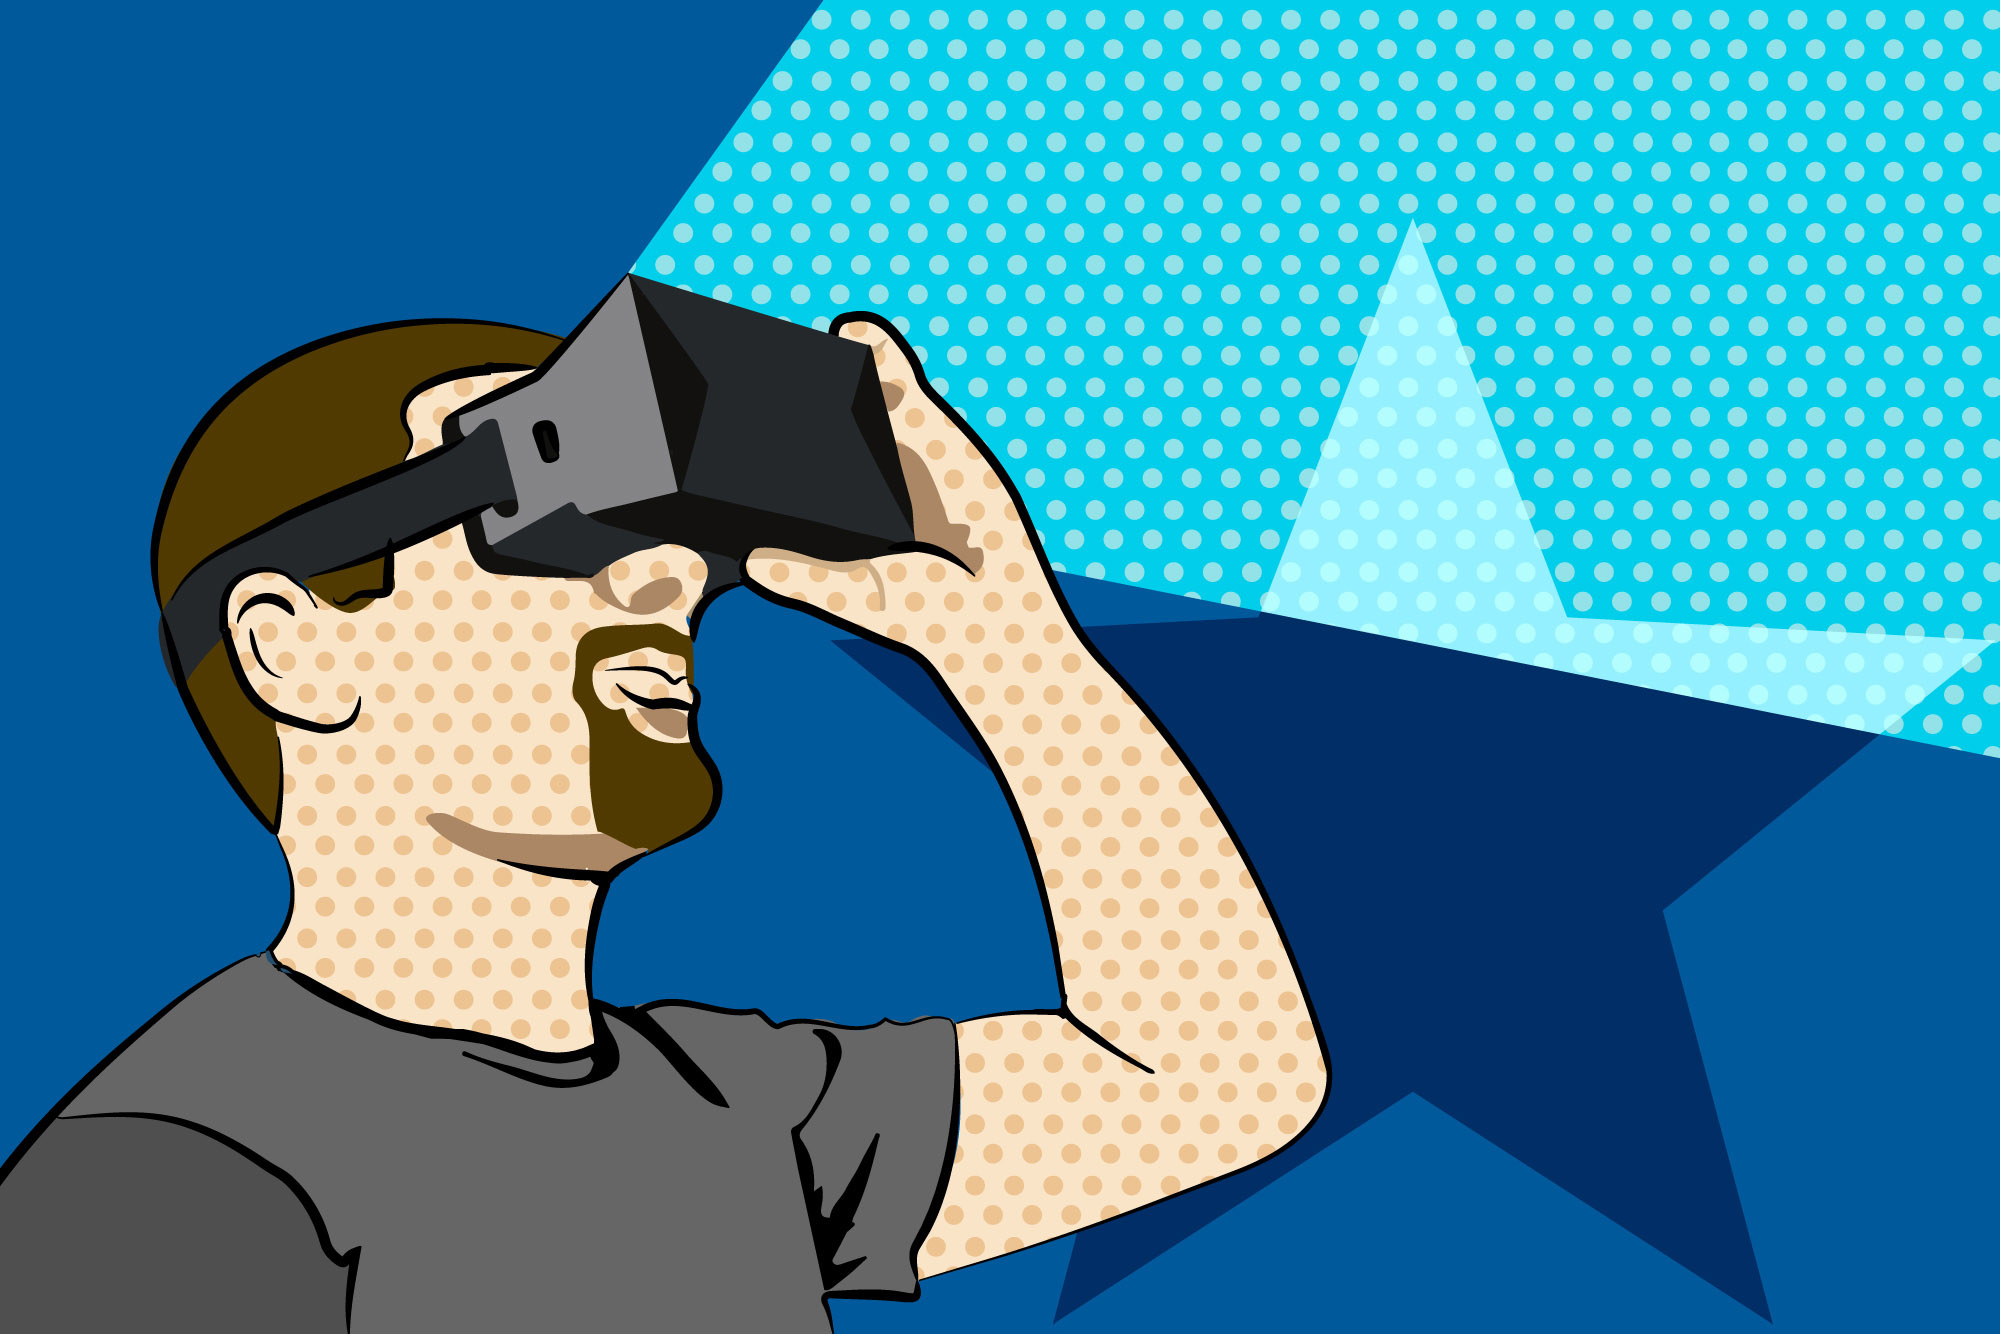 Virtual-Reality-Illustration